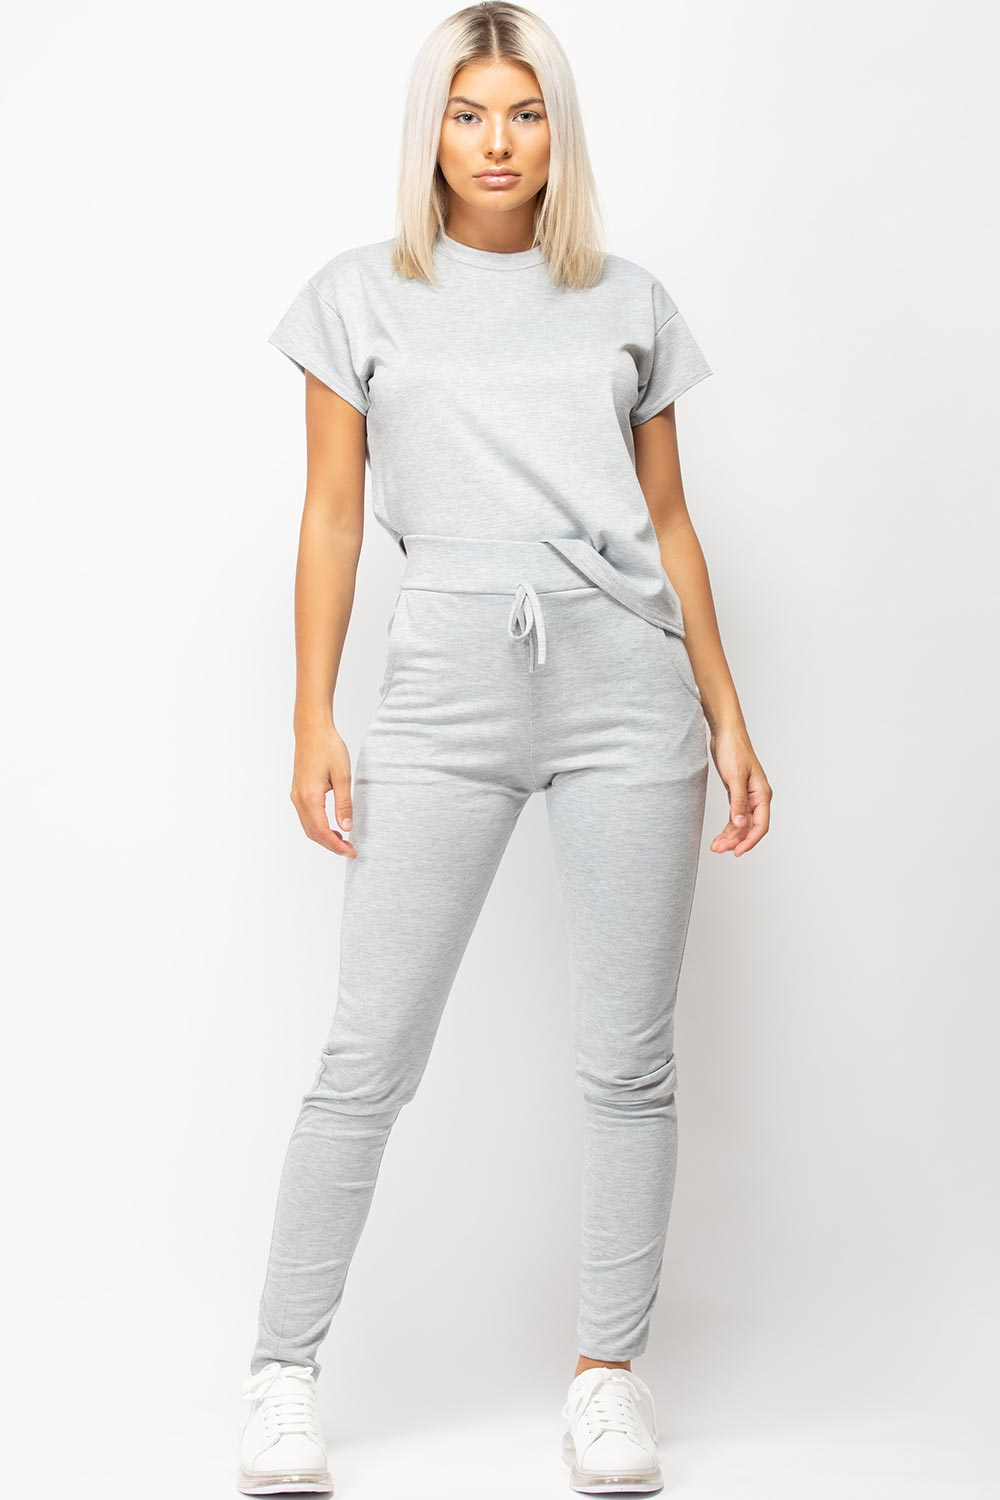 womens grey loungewear set uk